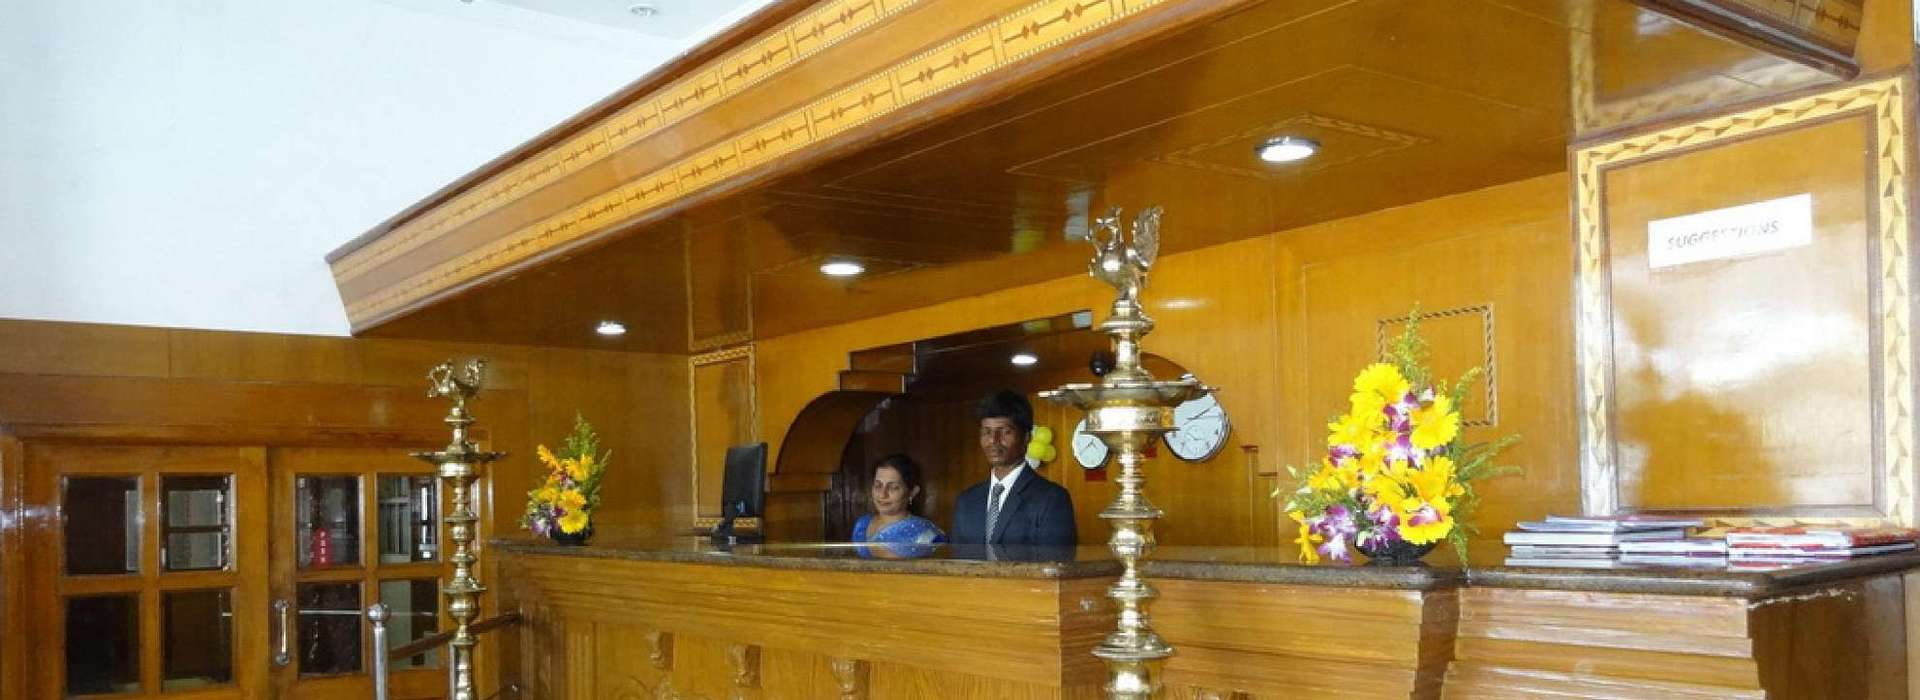 24 Hour Front Desk For Your Assistance @ Mount Heera Chennai